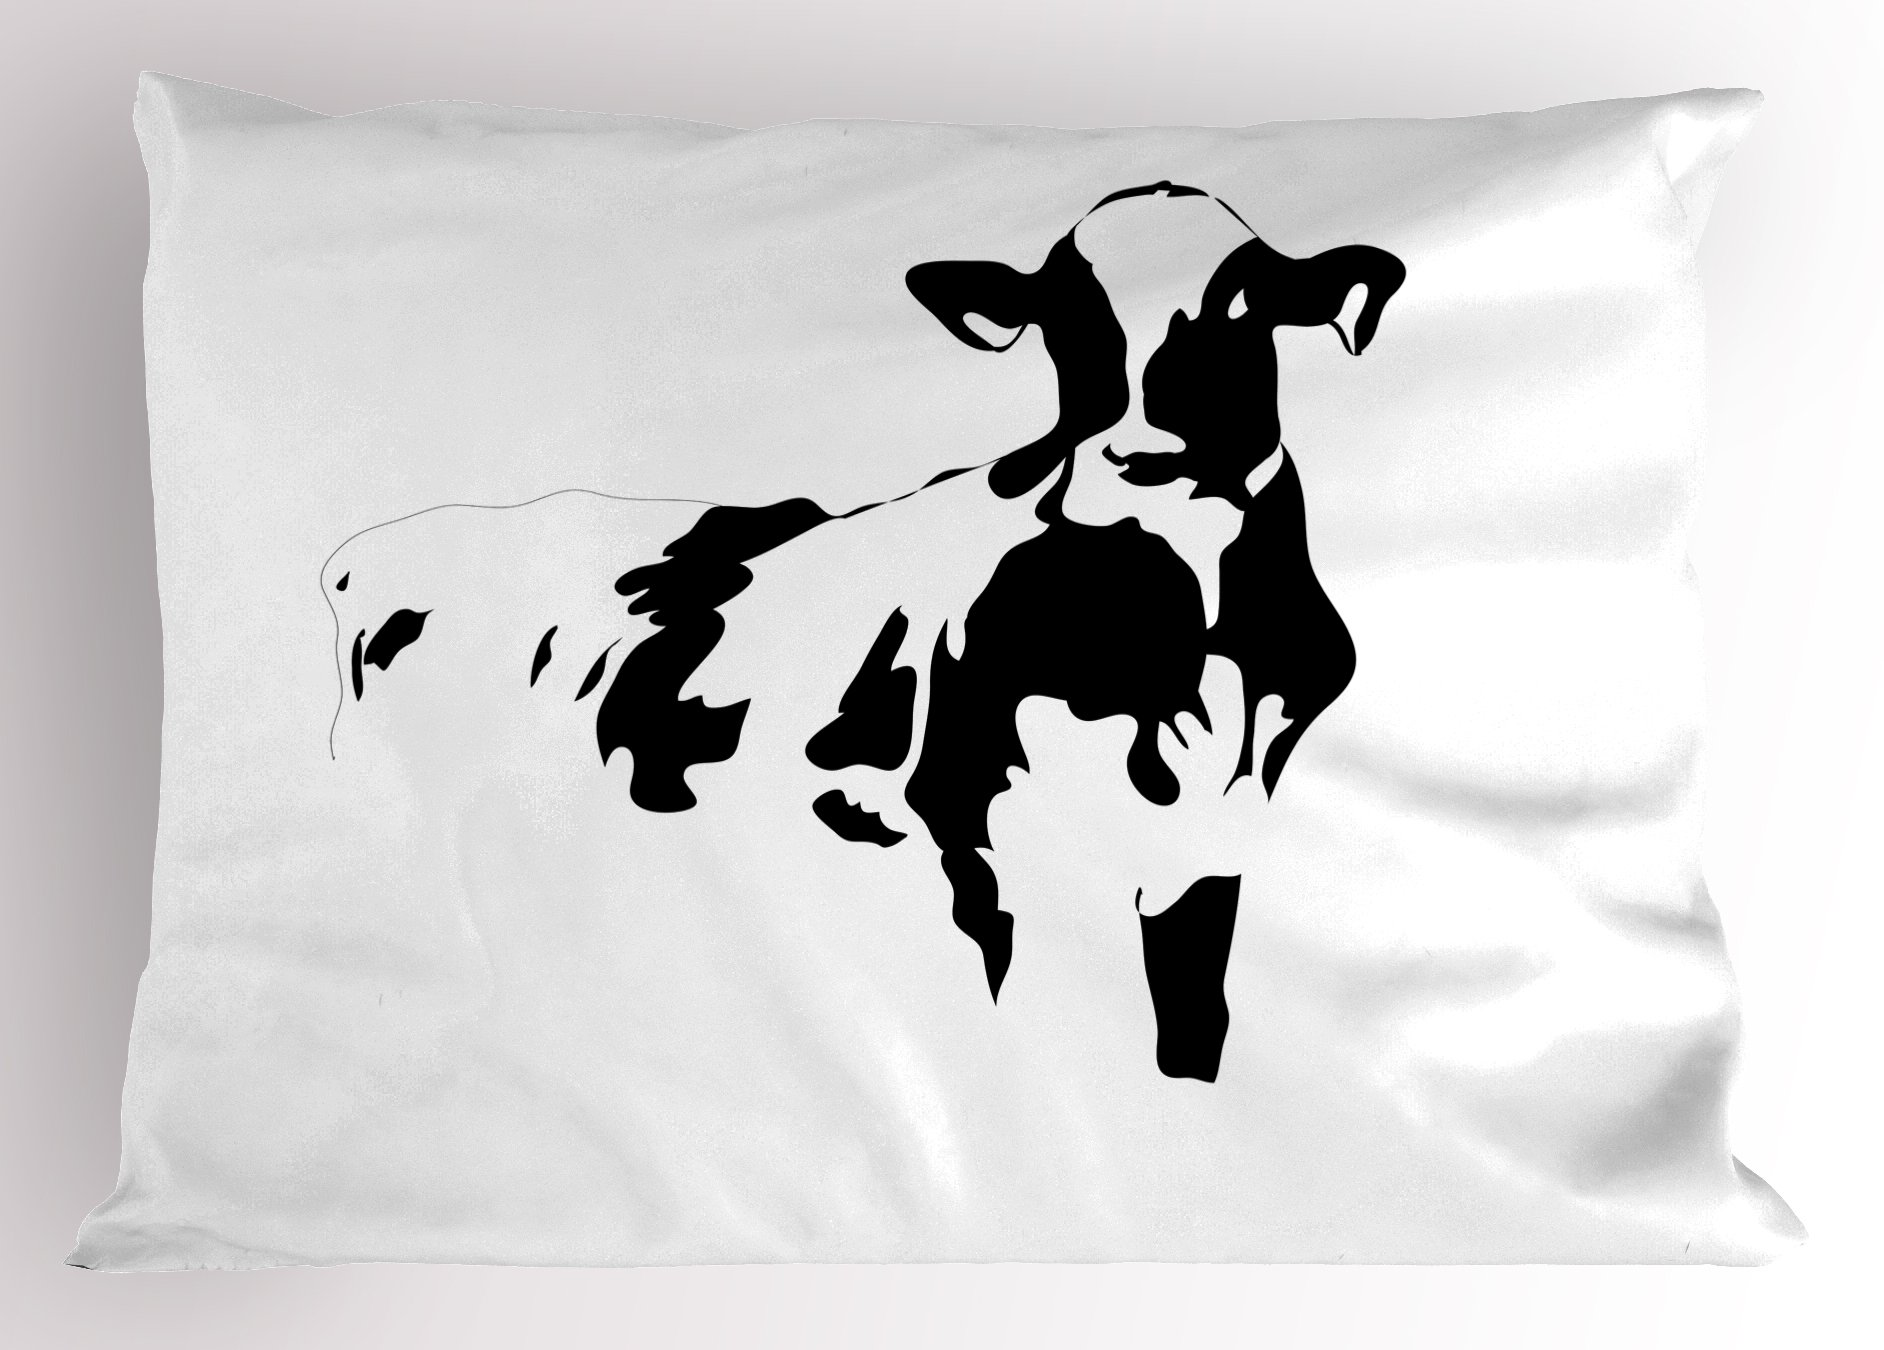 Lunarable Rustic Pillow Sham, Silhouette Portrait of a Cow Meat Milk Farm Animals Agriculture Themed Illustration, Decorative Standard Queen Size Printed Pillowcase, 30 X 20 Inches, Black White